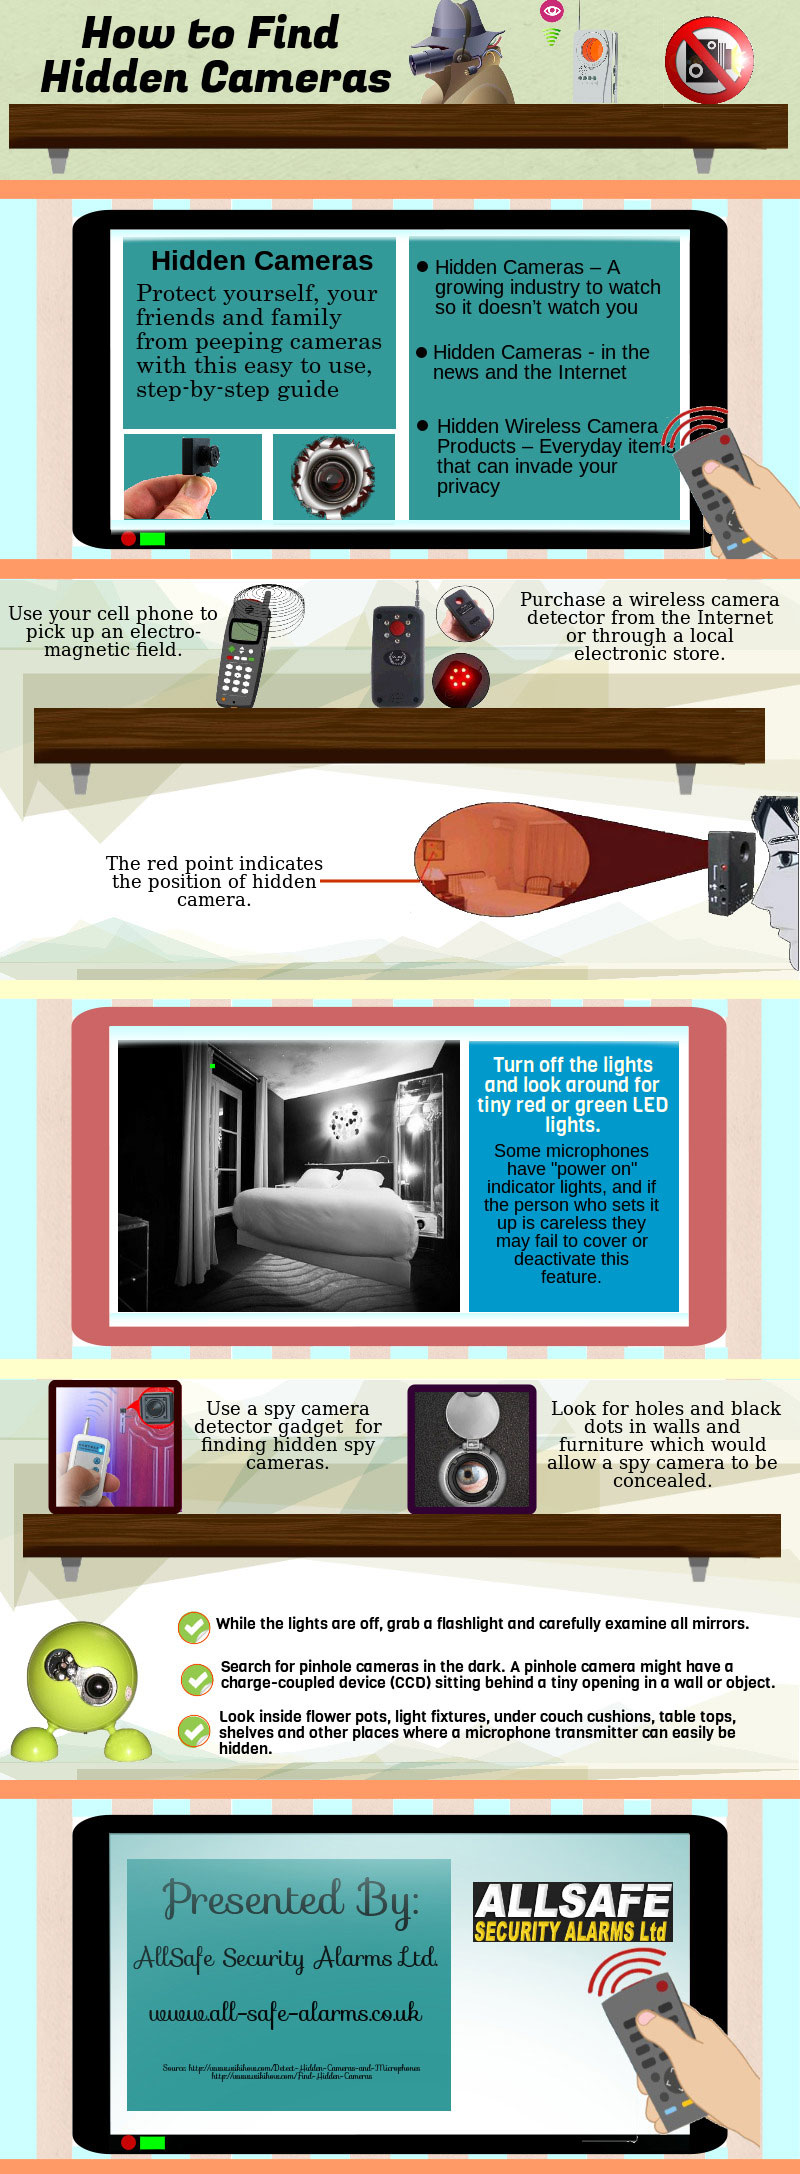 how-find-hidden-cameras-infographic